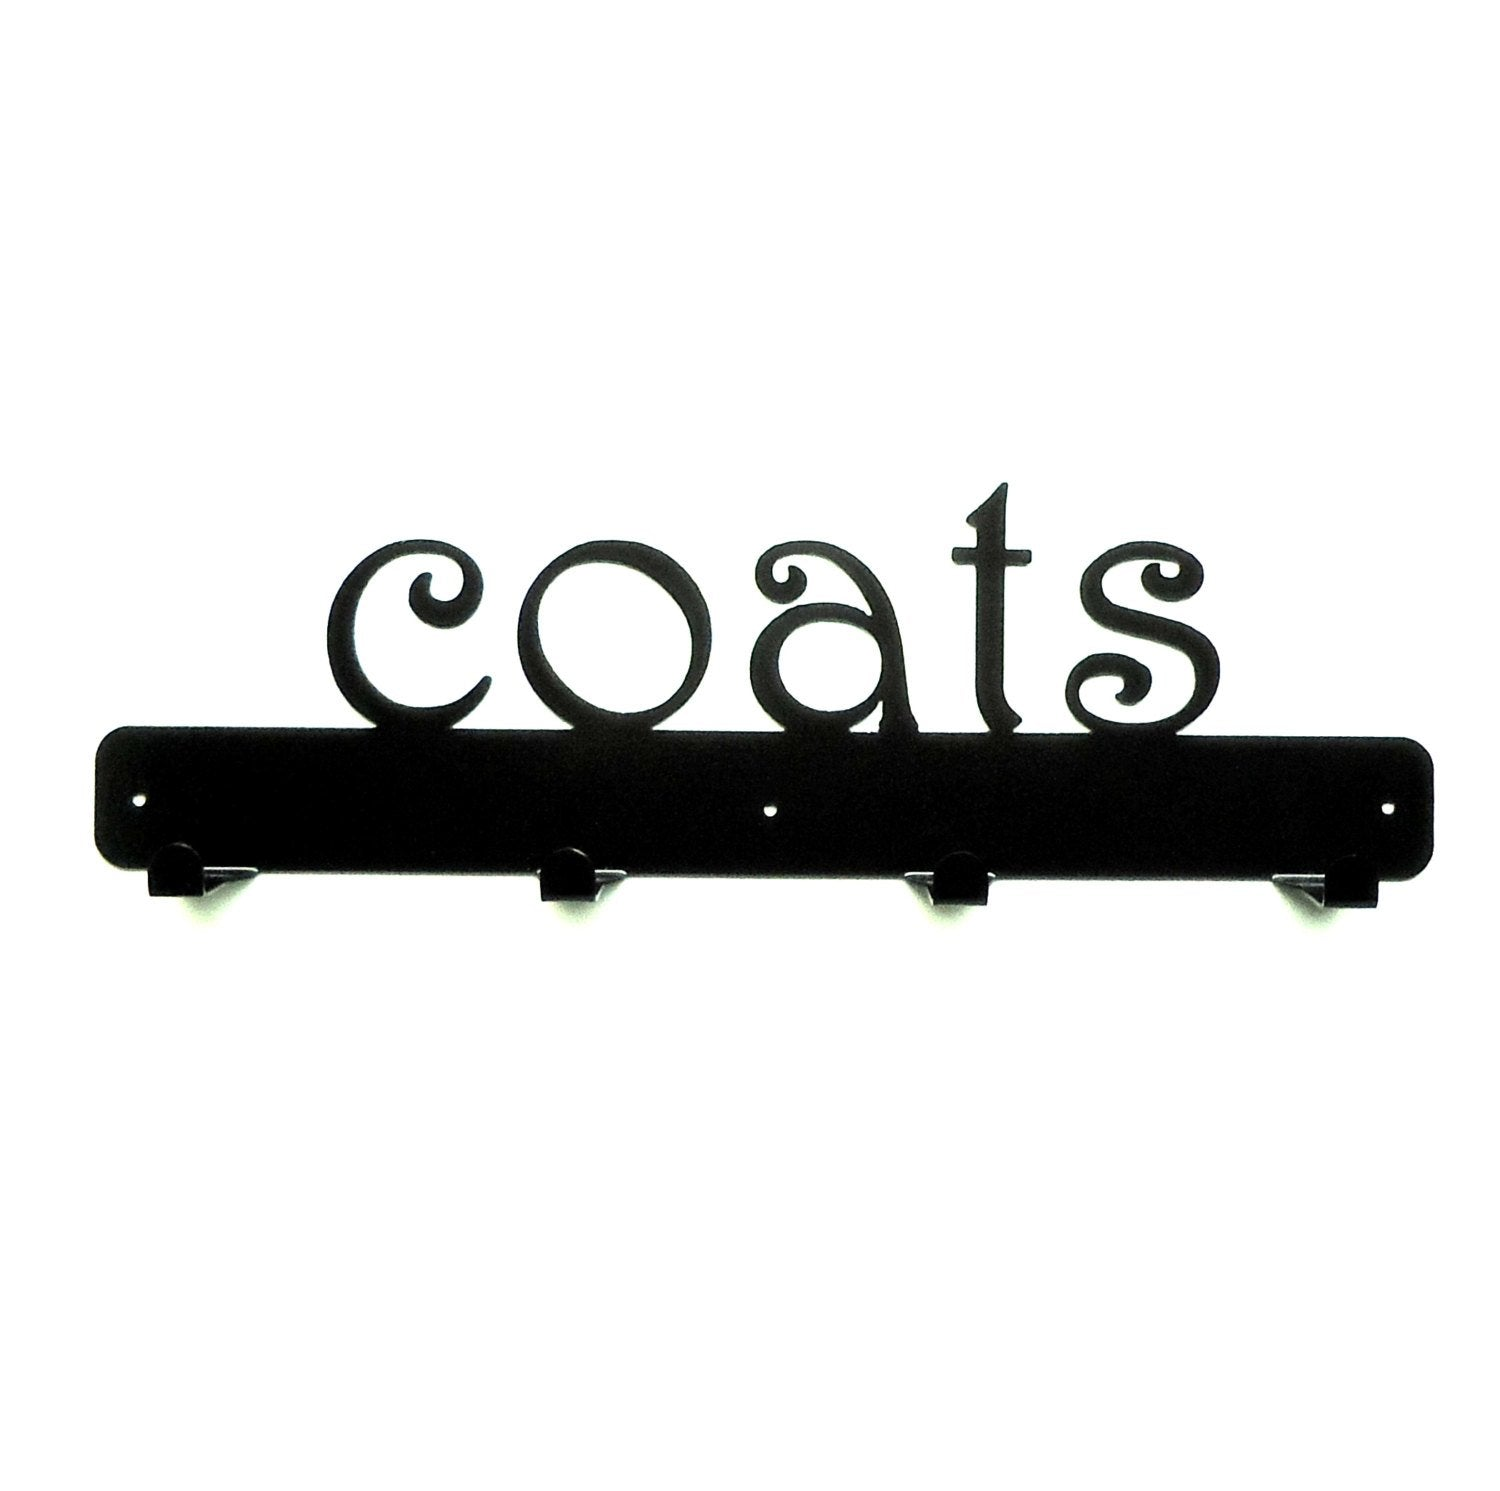 Coats Coat Rack